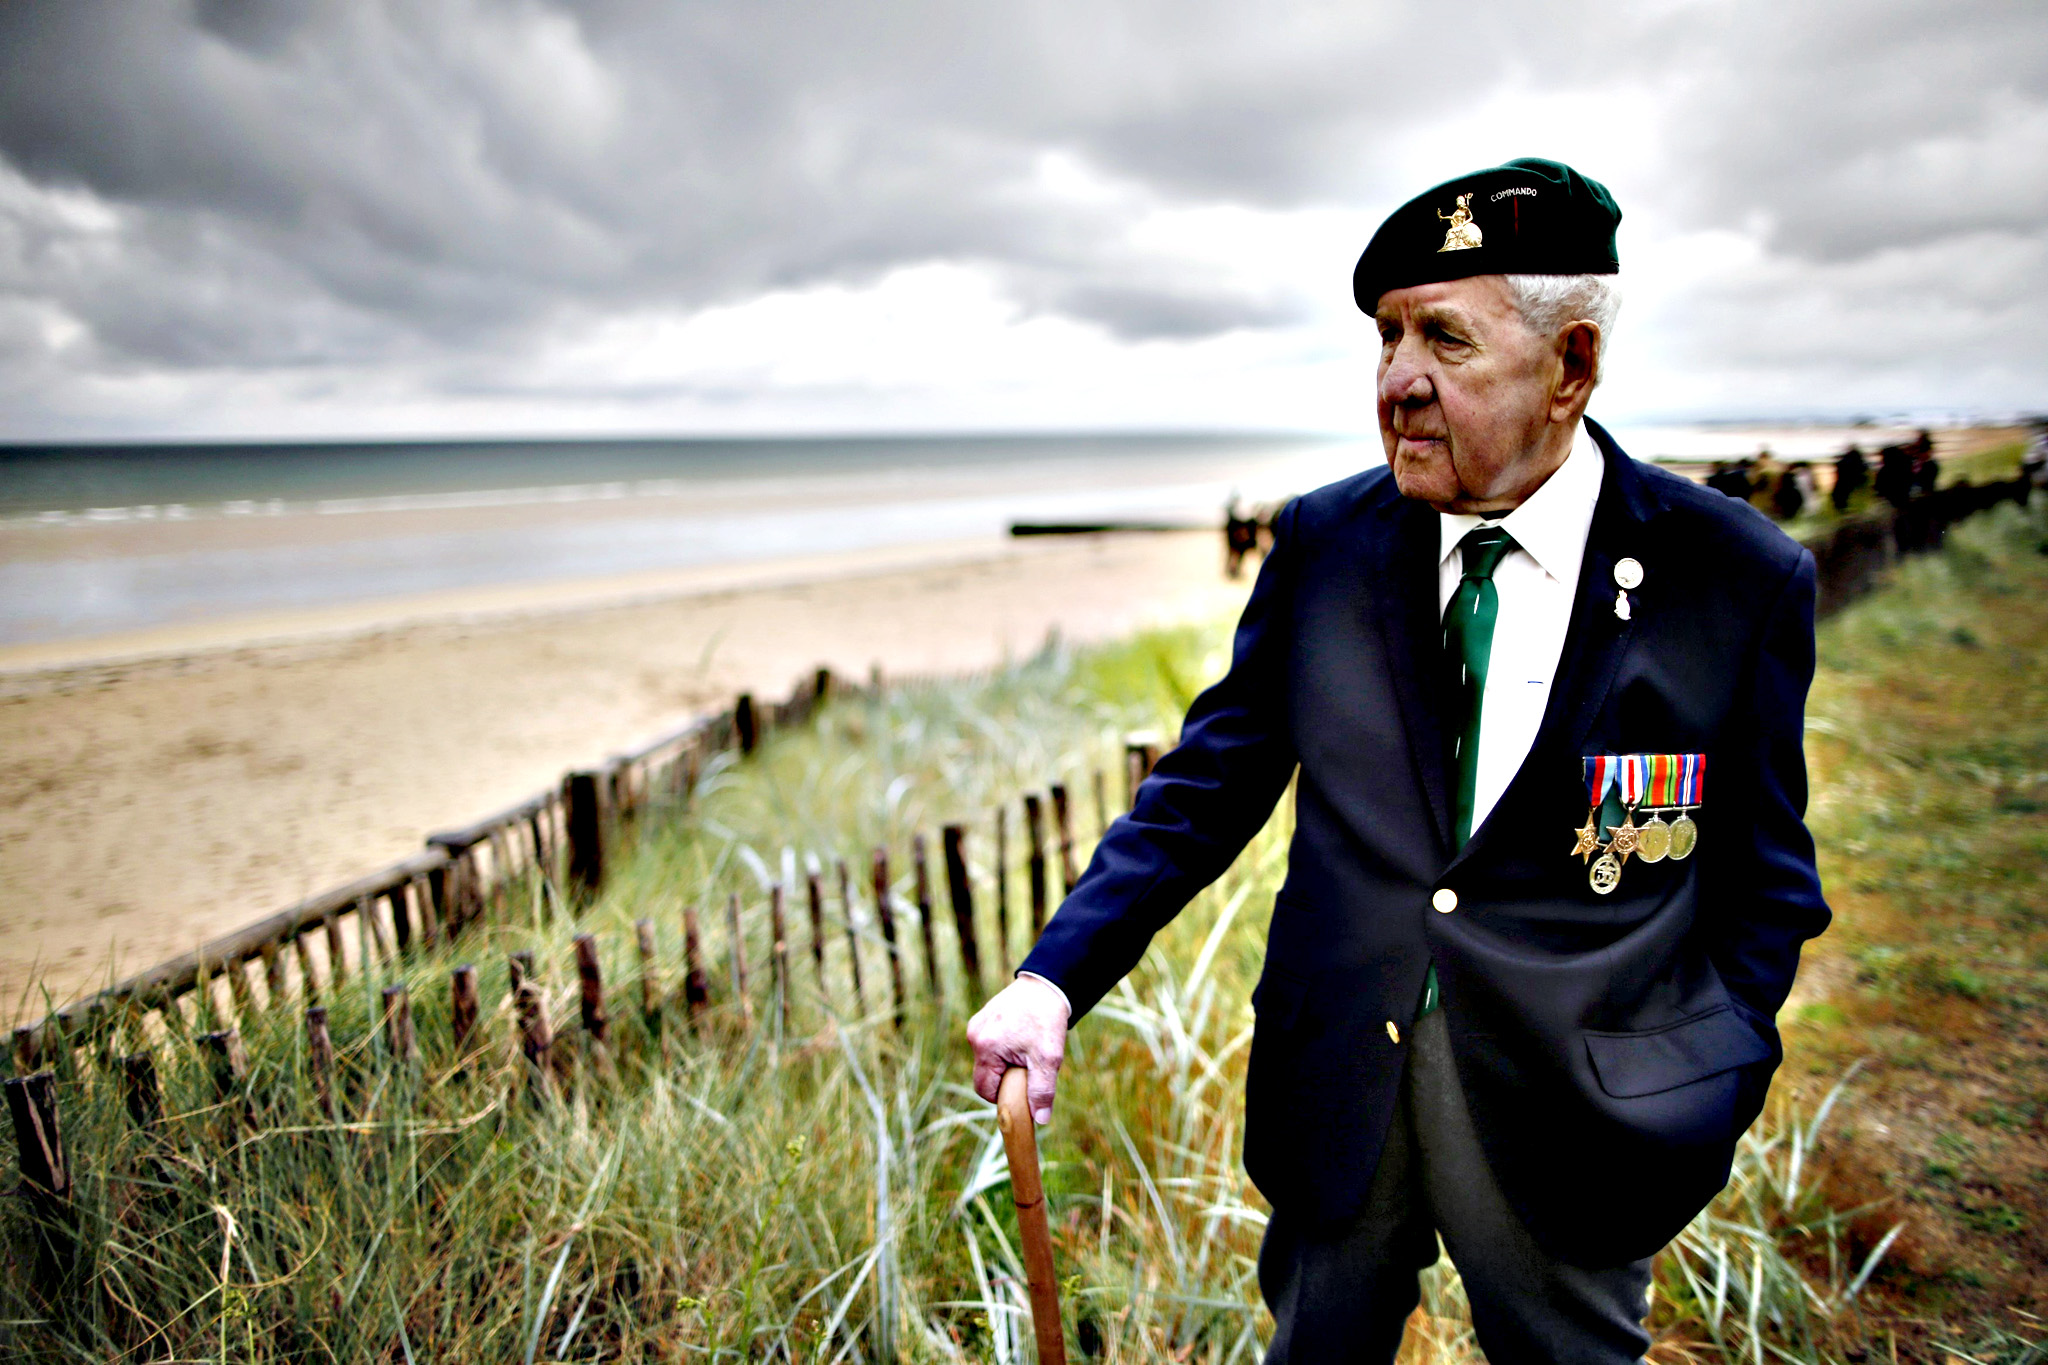 World War II veteran Herbert Beddows, 92 years-old from Britain who served with three different commandos and landed on Sword Beach on June 6, 1944, poses on the beach front outside Colleville-Montgomery